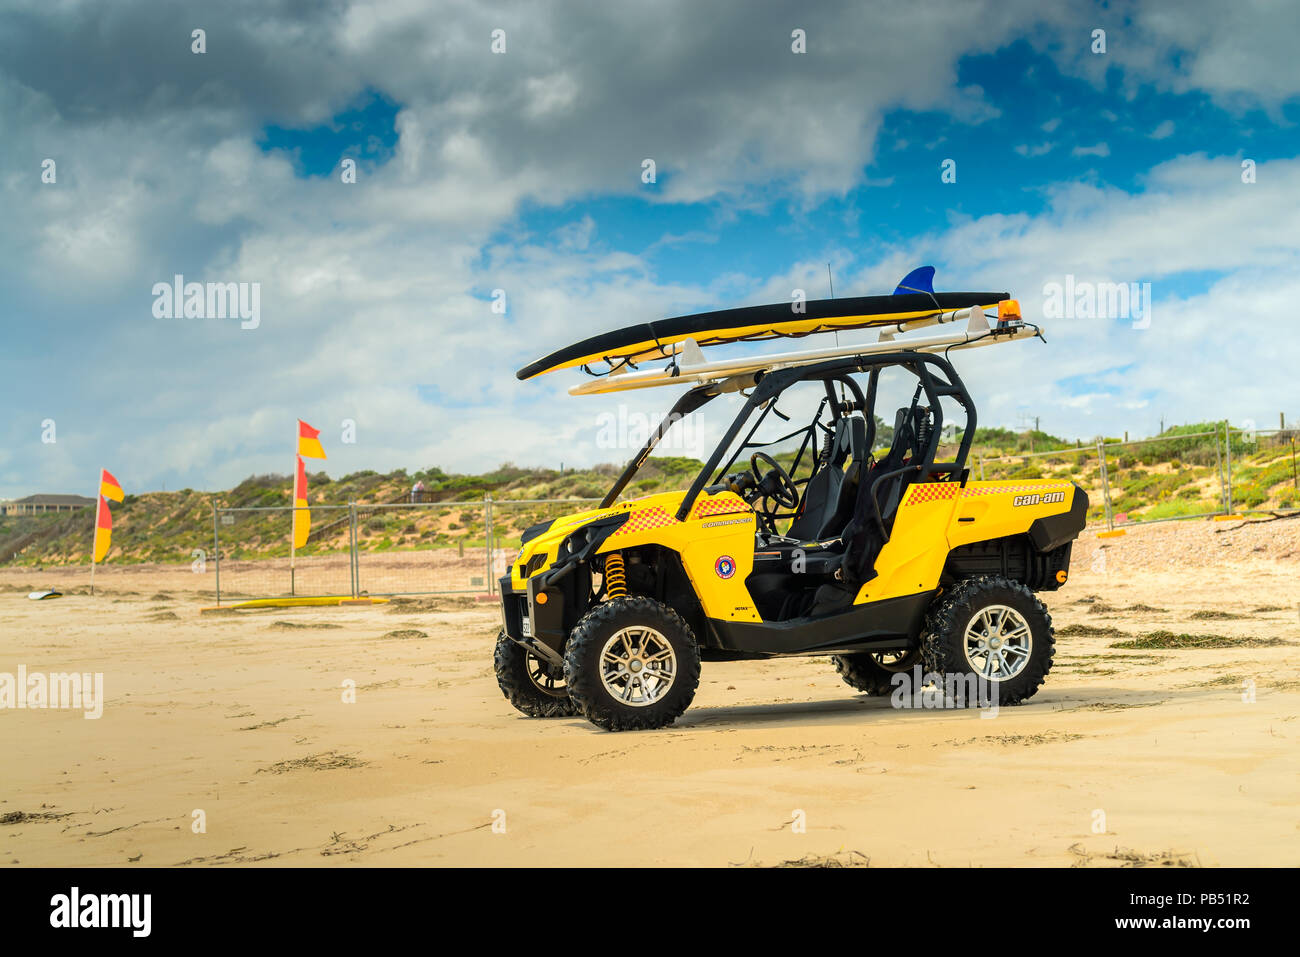 Adelaide, Australia - February 18, 2017: Australian surf life saving rescue car parked on the shores of Sellicks Beach on a day - Stock Image